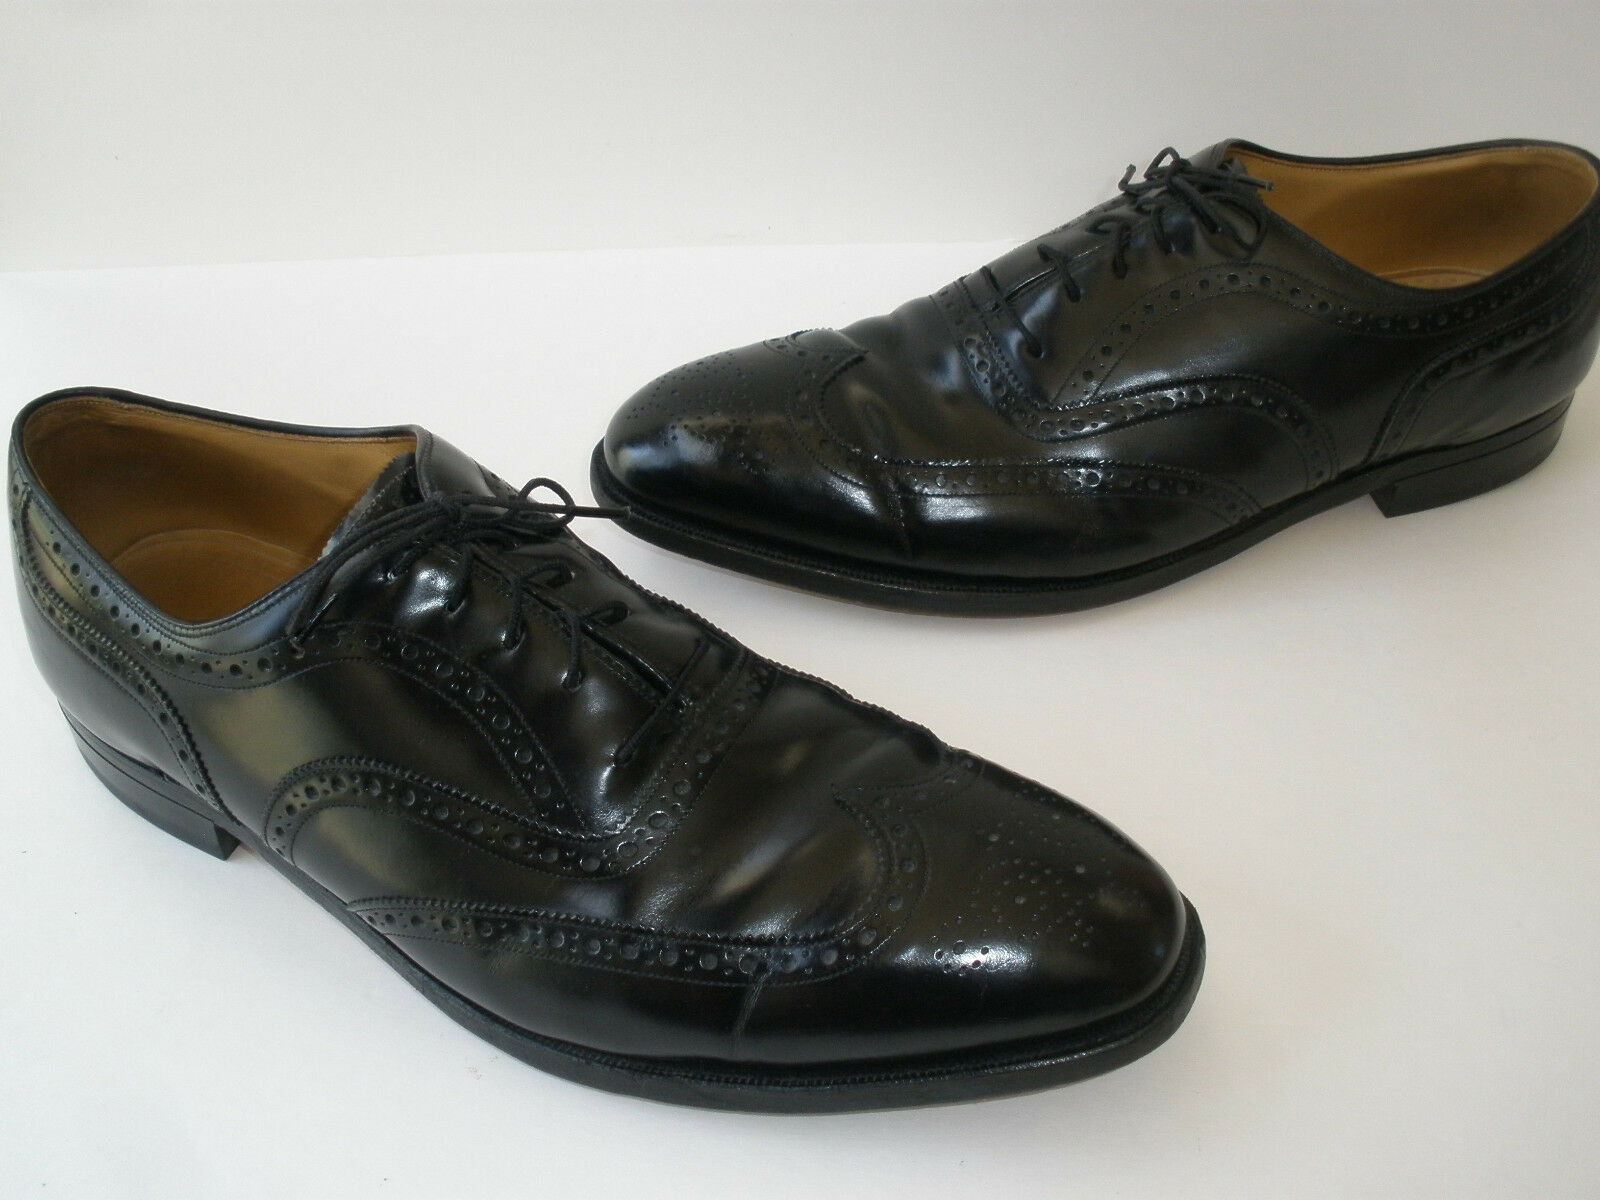 JOHNSTON & MURPHY ARISTOCRAFT WING TIP LEATHER OXFORD US13  249 MADE IN USA